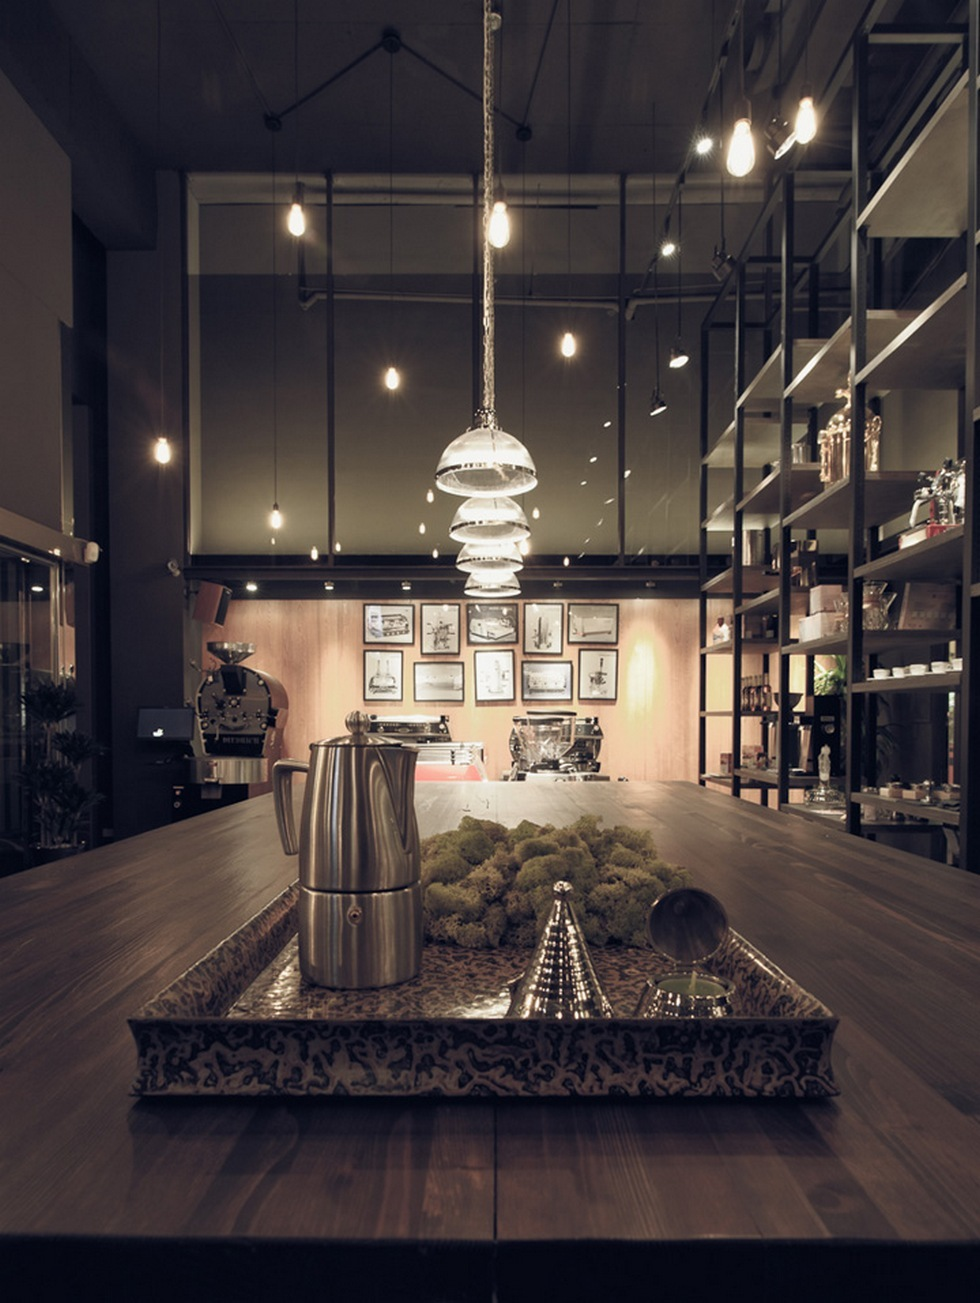 The best lighting design stores in Taipei lighting design stores The best lighting design stores in Taipei The best lighting design stores in Taipei